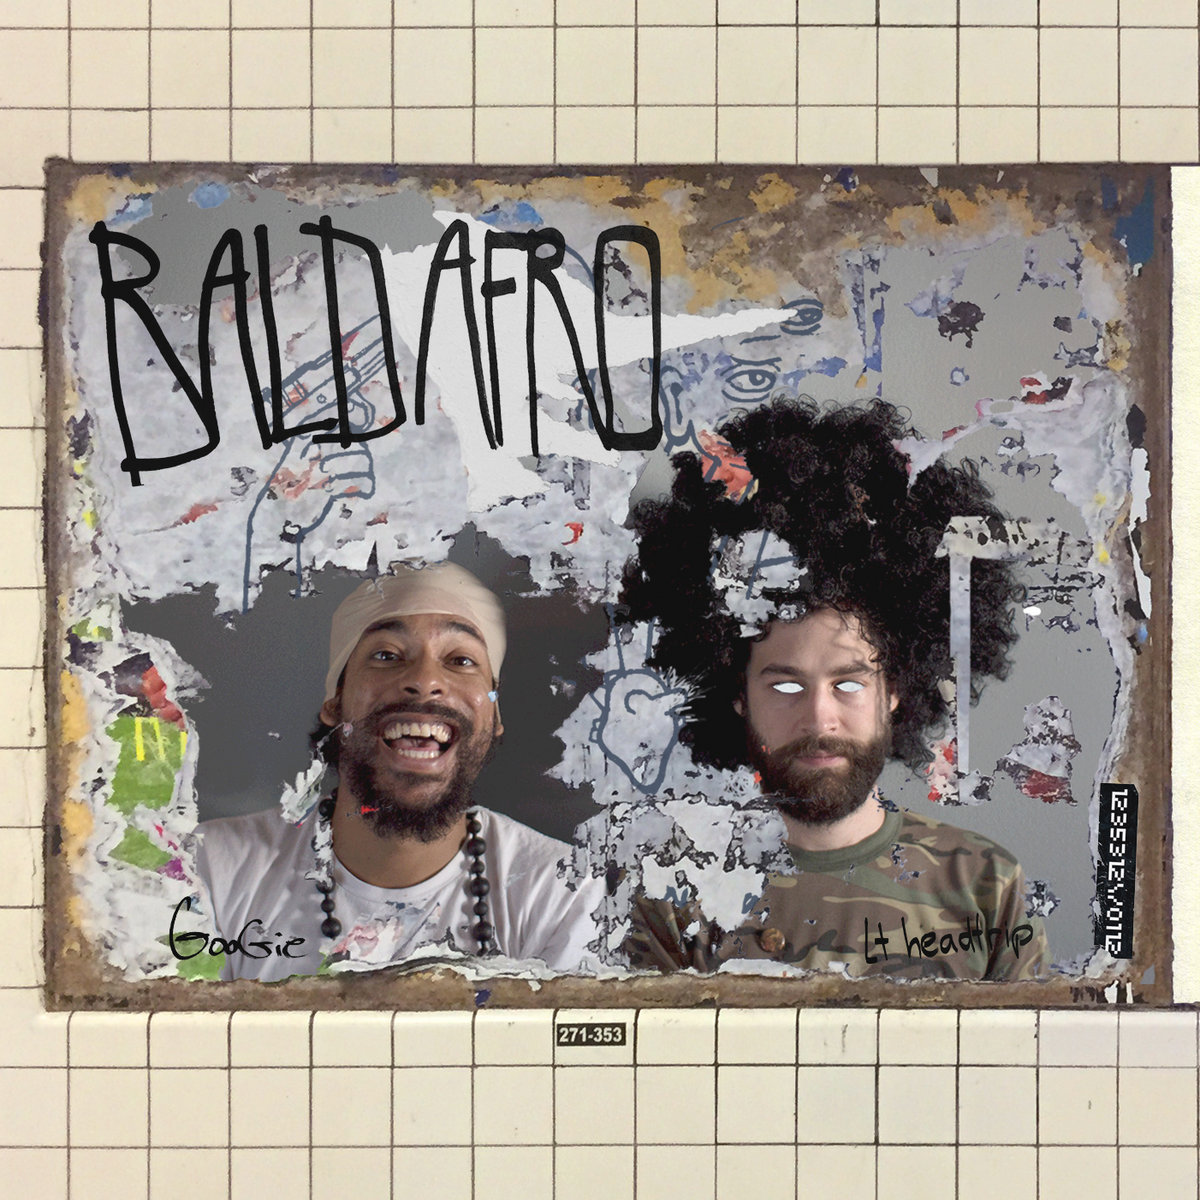 by BALD AFRO